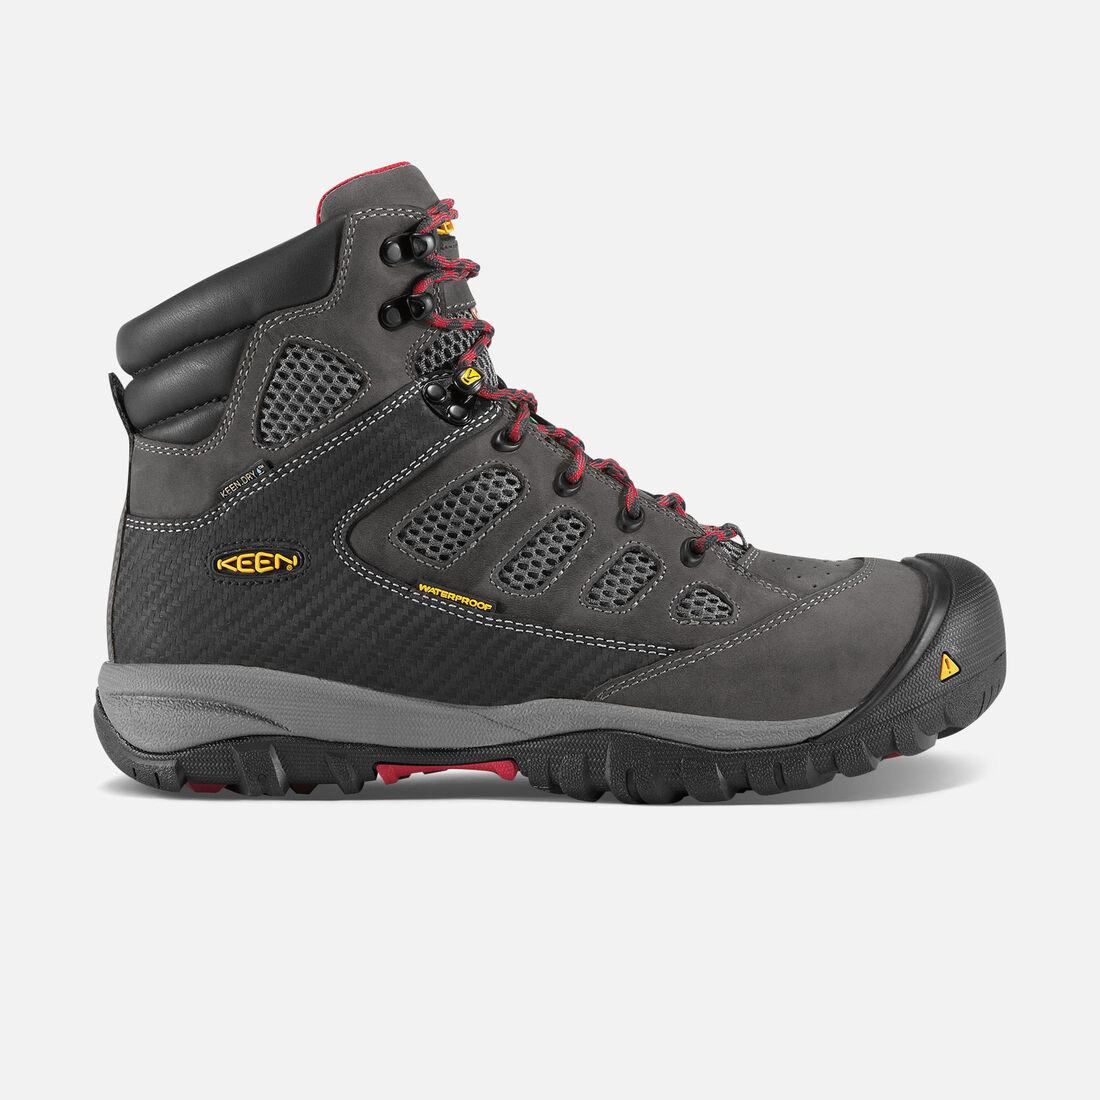 CSA Doverland Waterproof Mid (Steel Toe) pour homme in Magnet/Chili Pepper - large view.